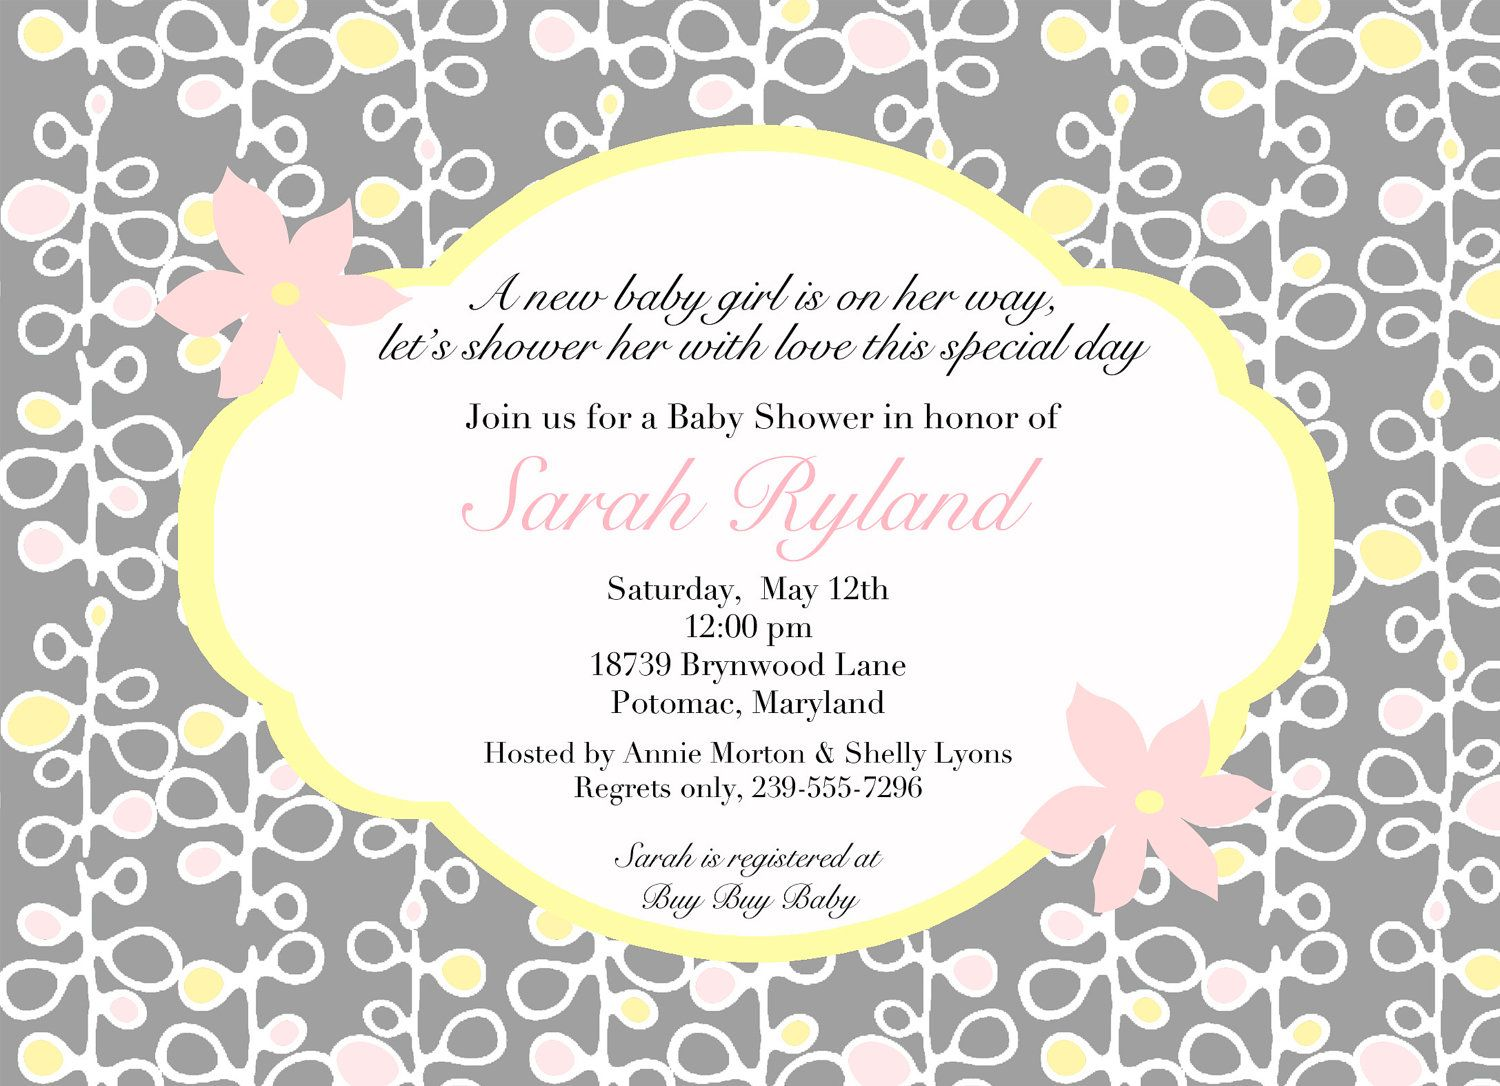 Download Now Make Homemade Baby Shower Invitation : Wording Ideas ...